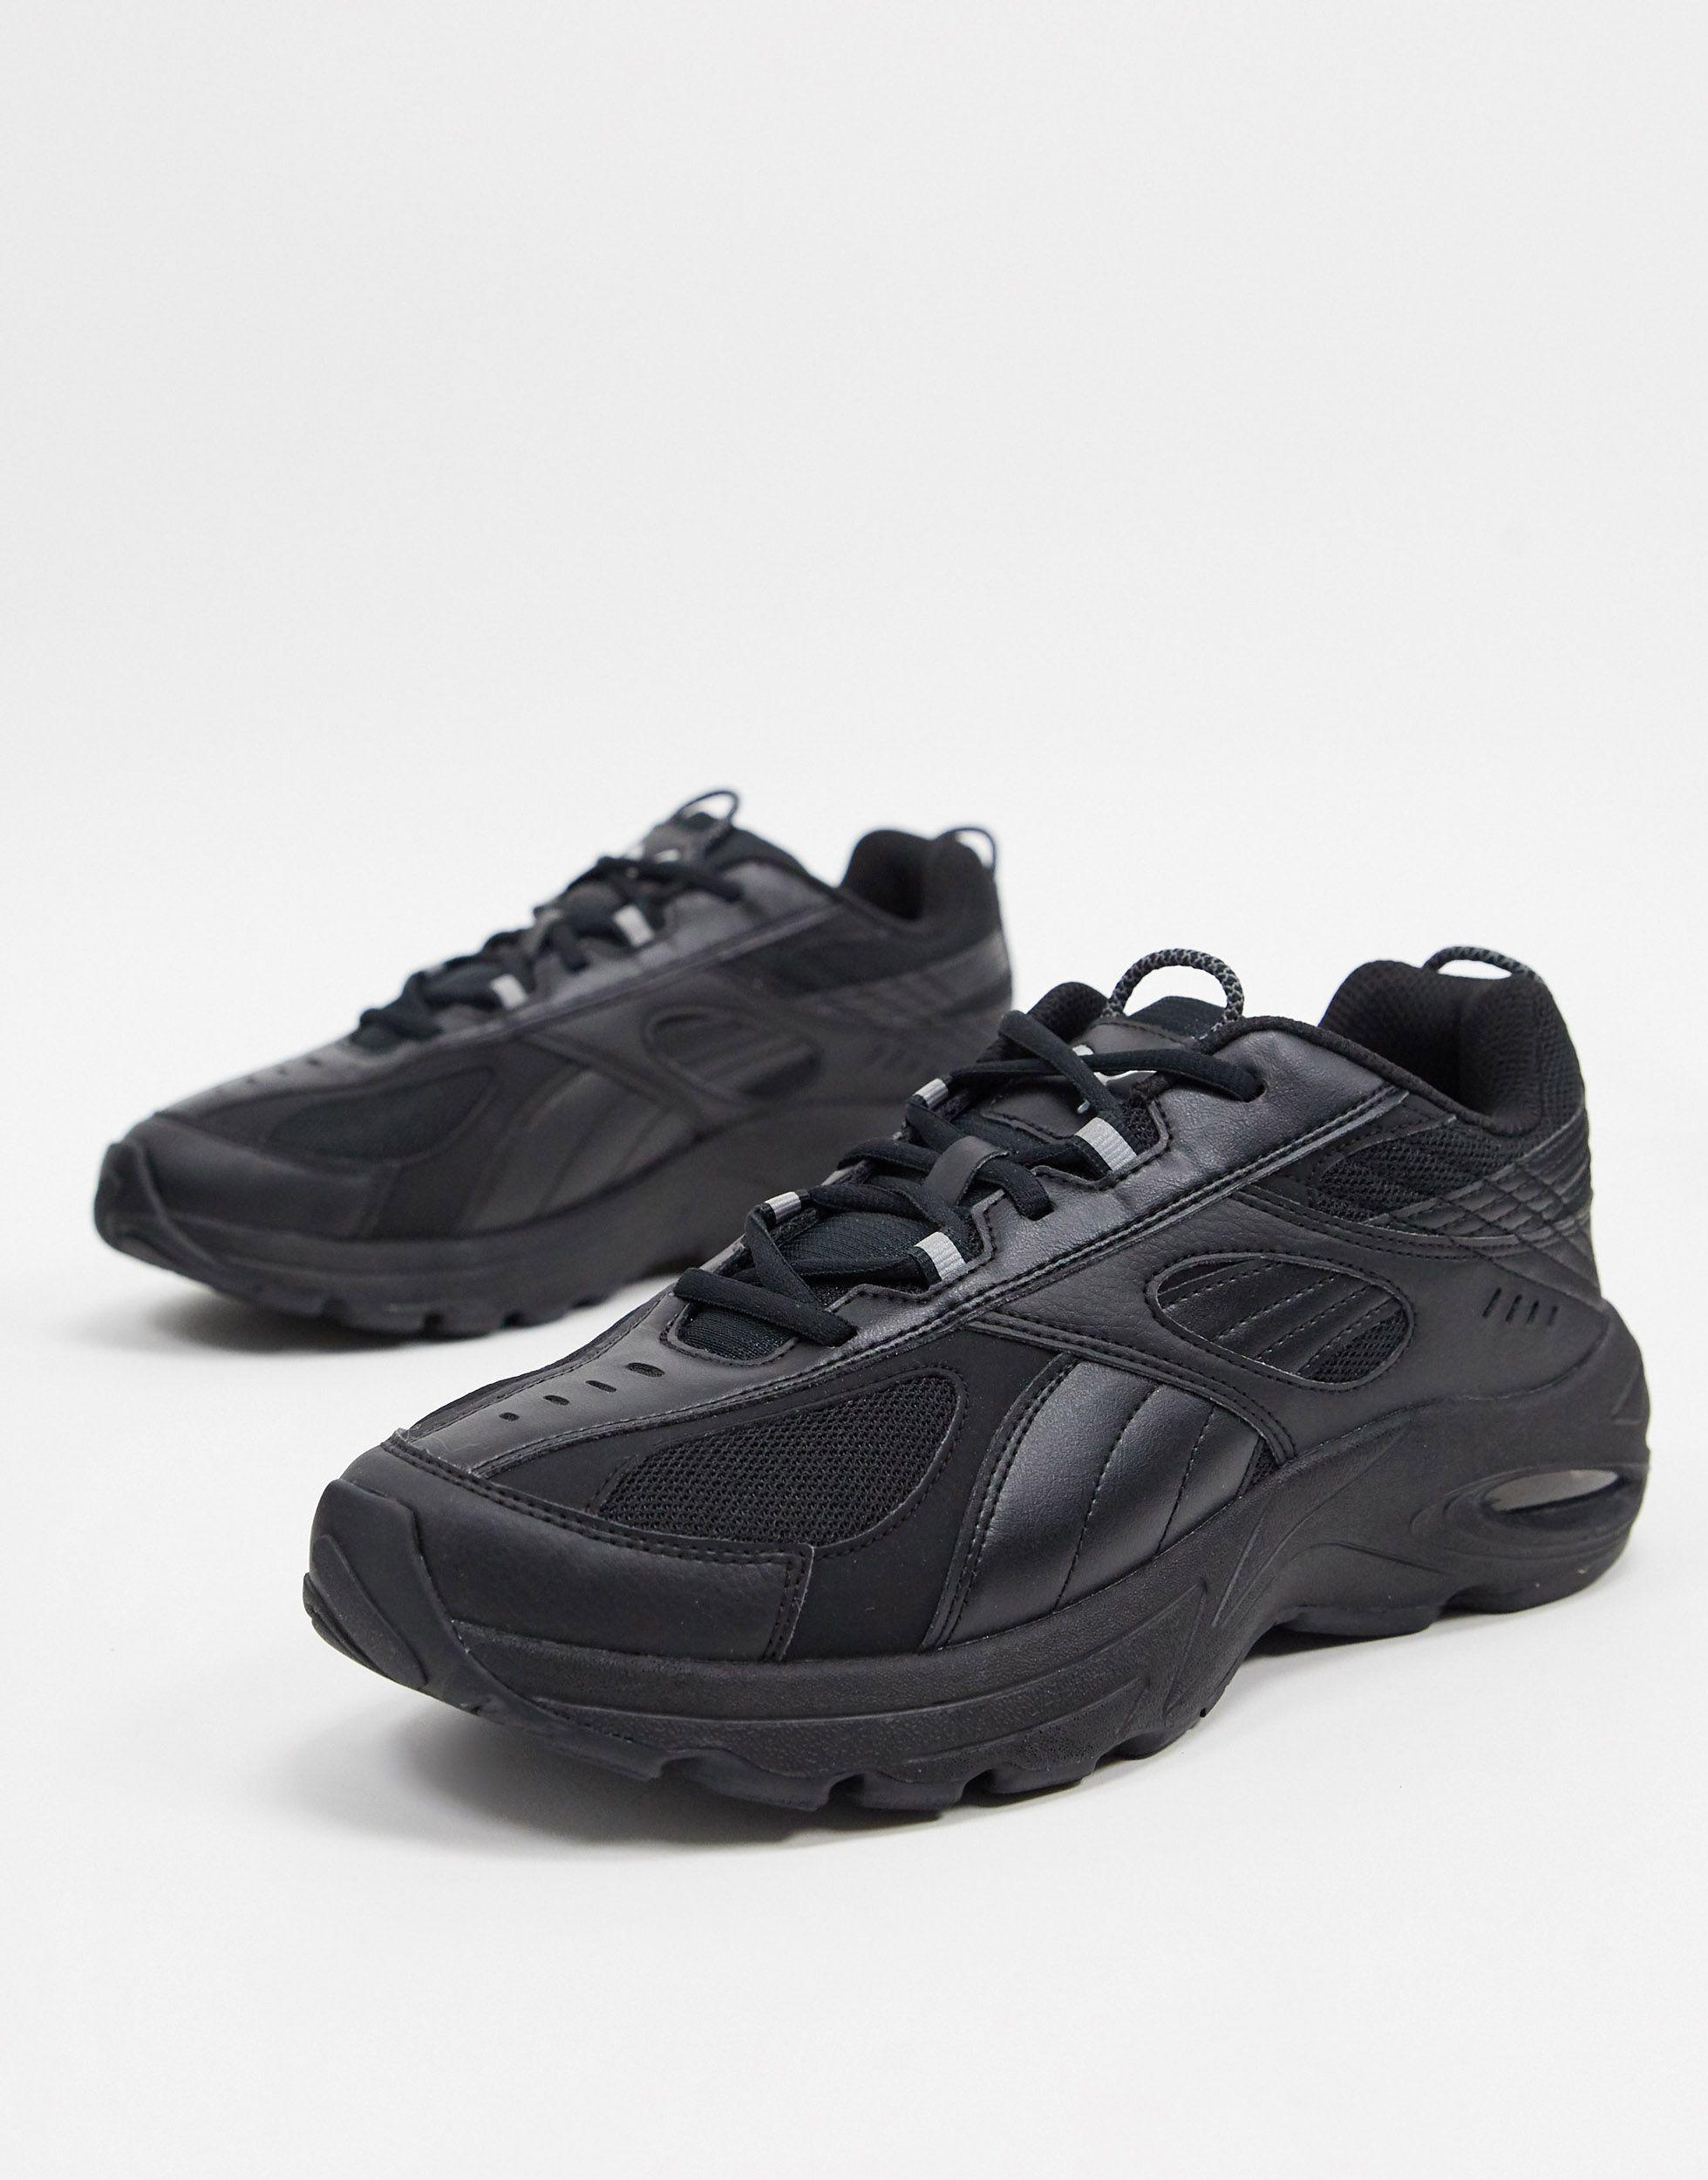 PUMA Rubber Cell Speed Reflective